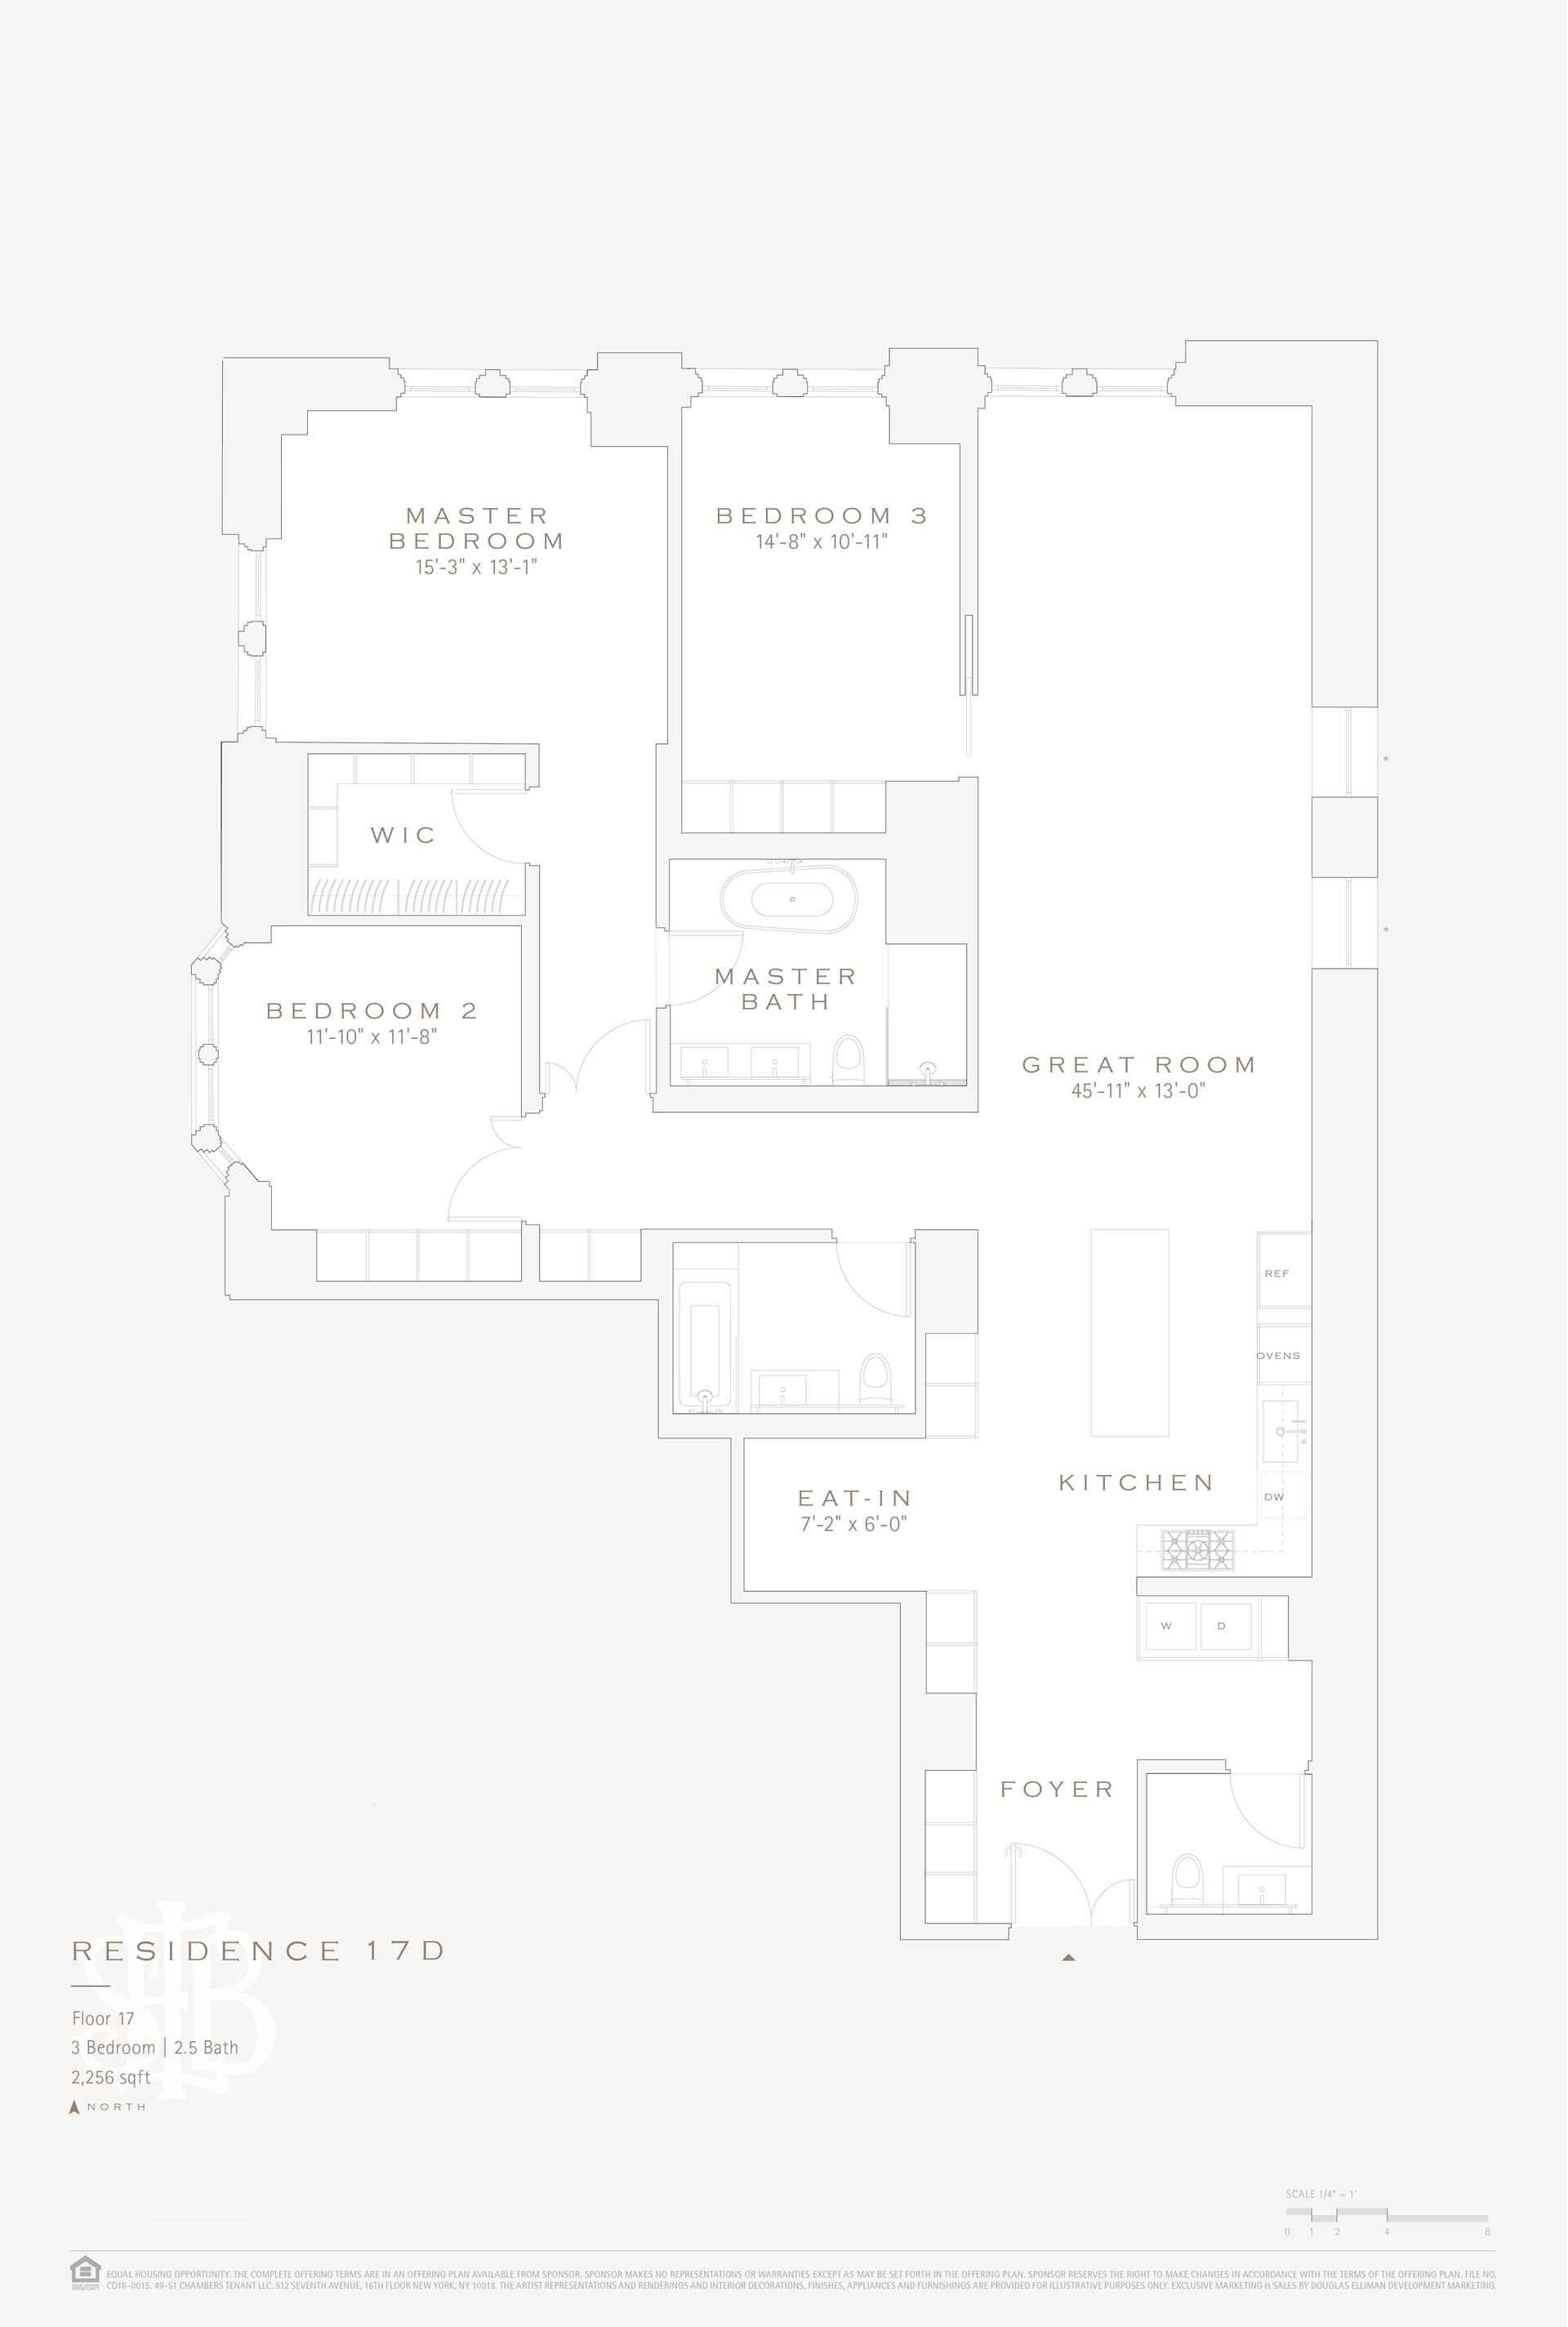 Floor plan of 49 Chambers St, 17D - TriBeCa, New York